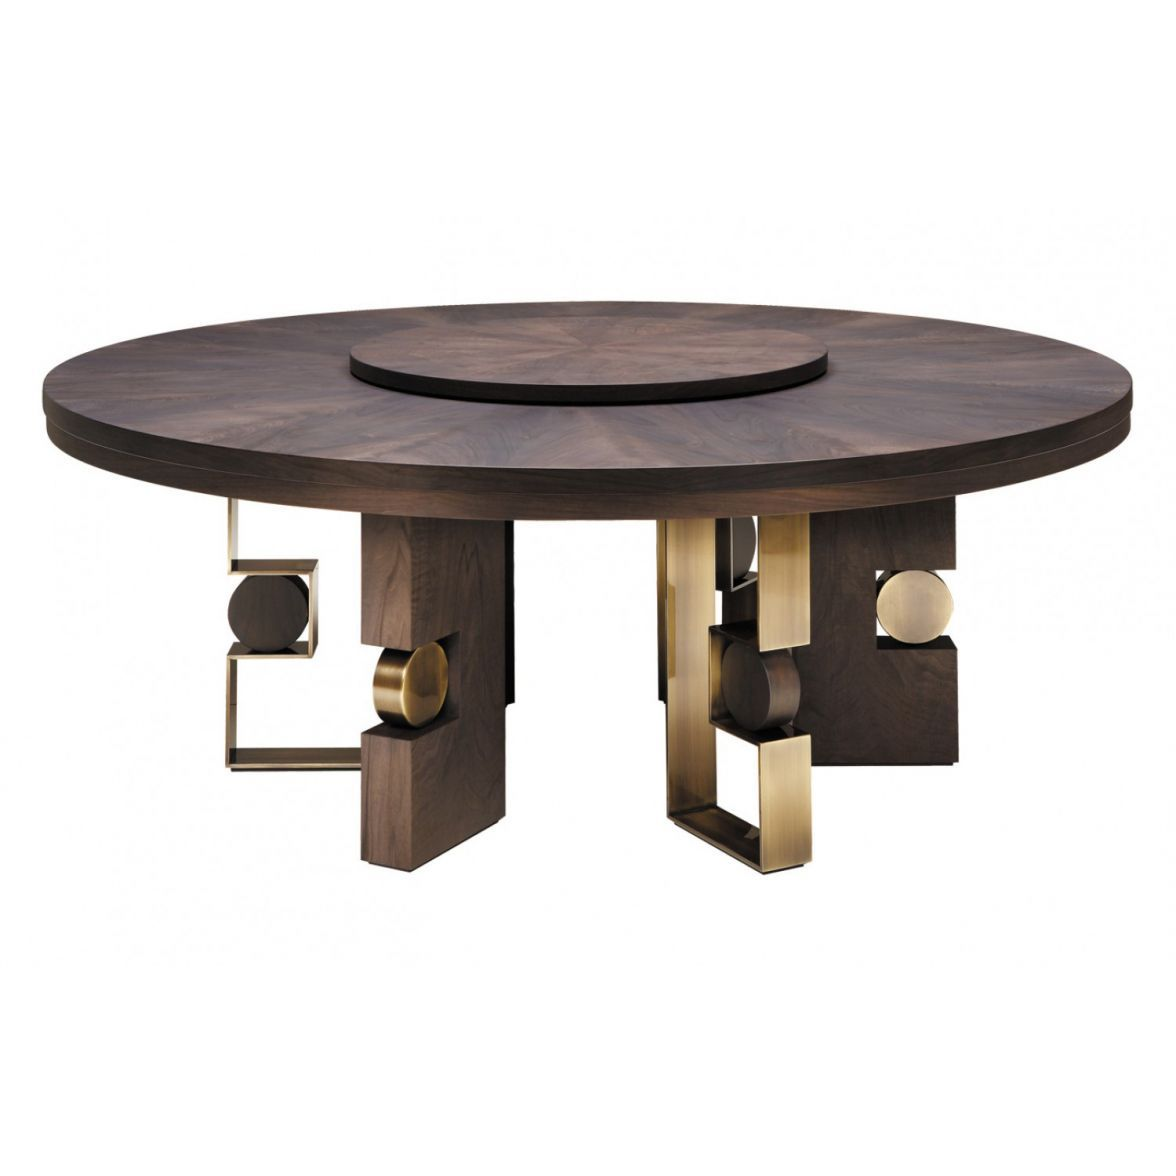 Rodrigo table